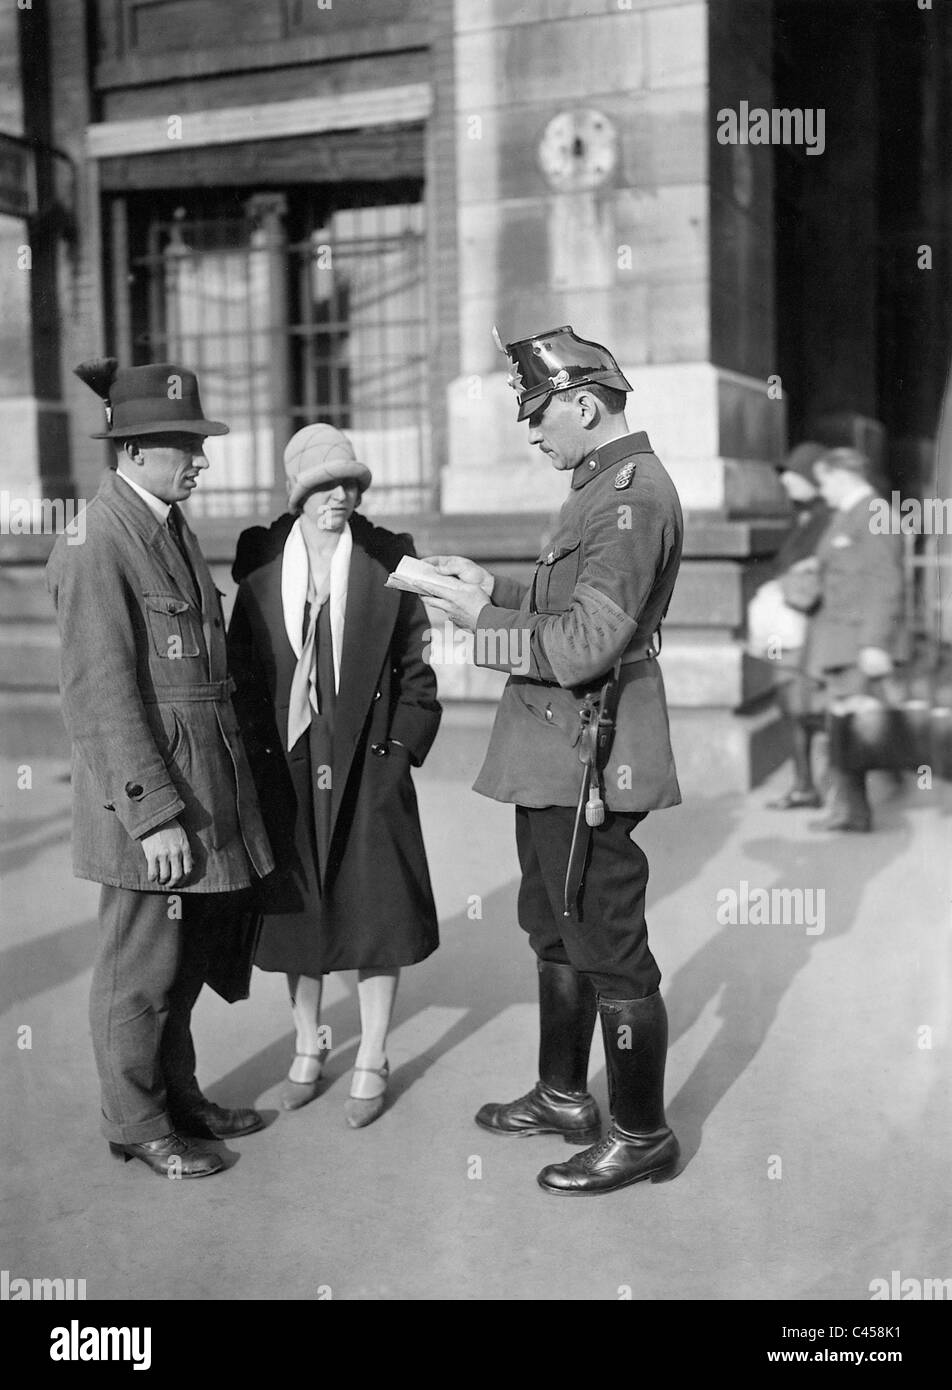 Policeman and passers-by in Berlin, 1929 - Stock Image